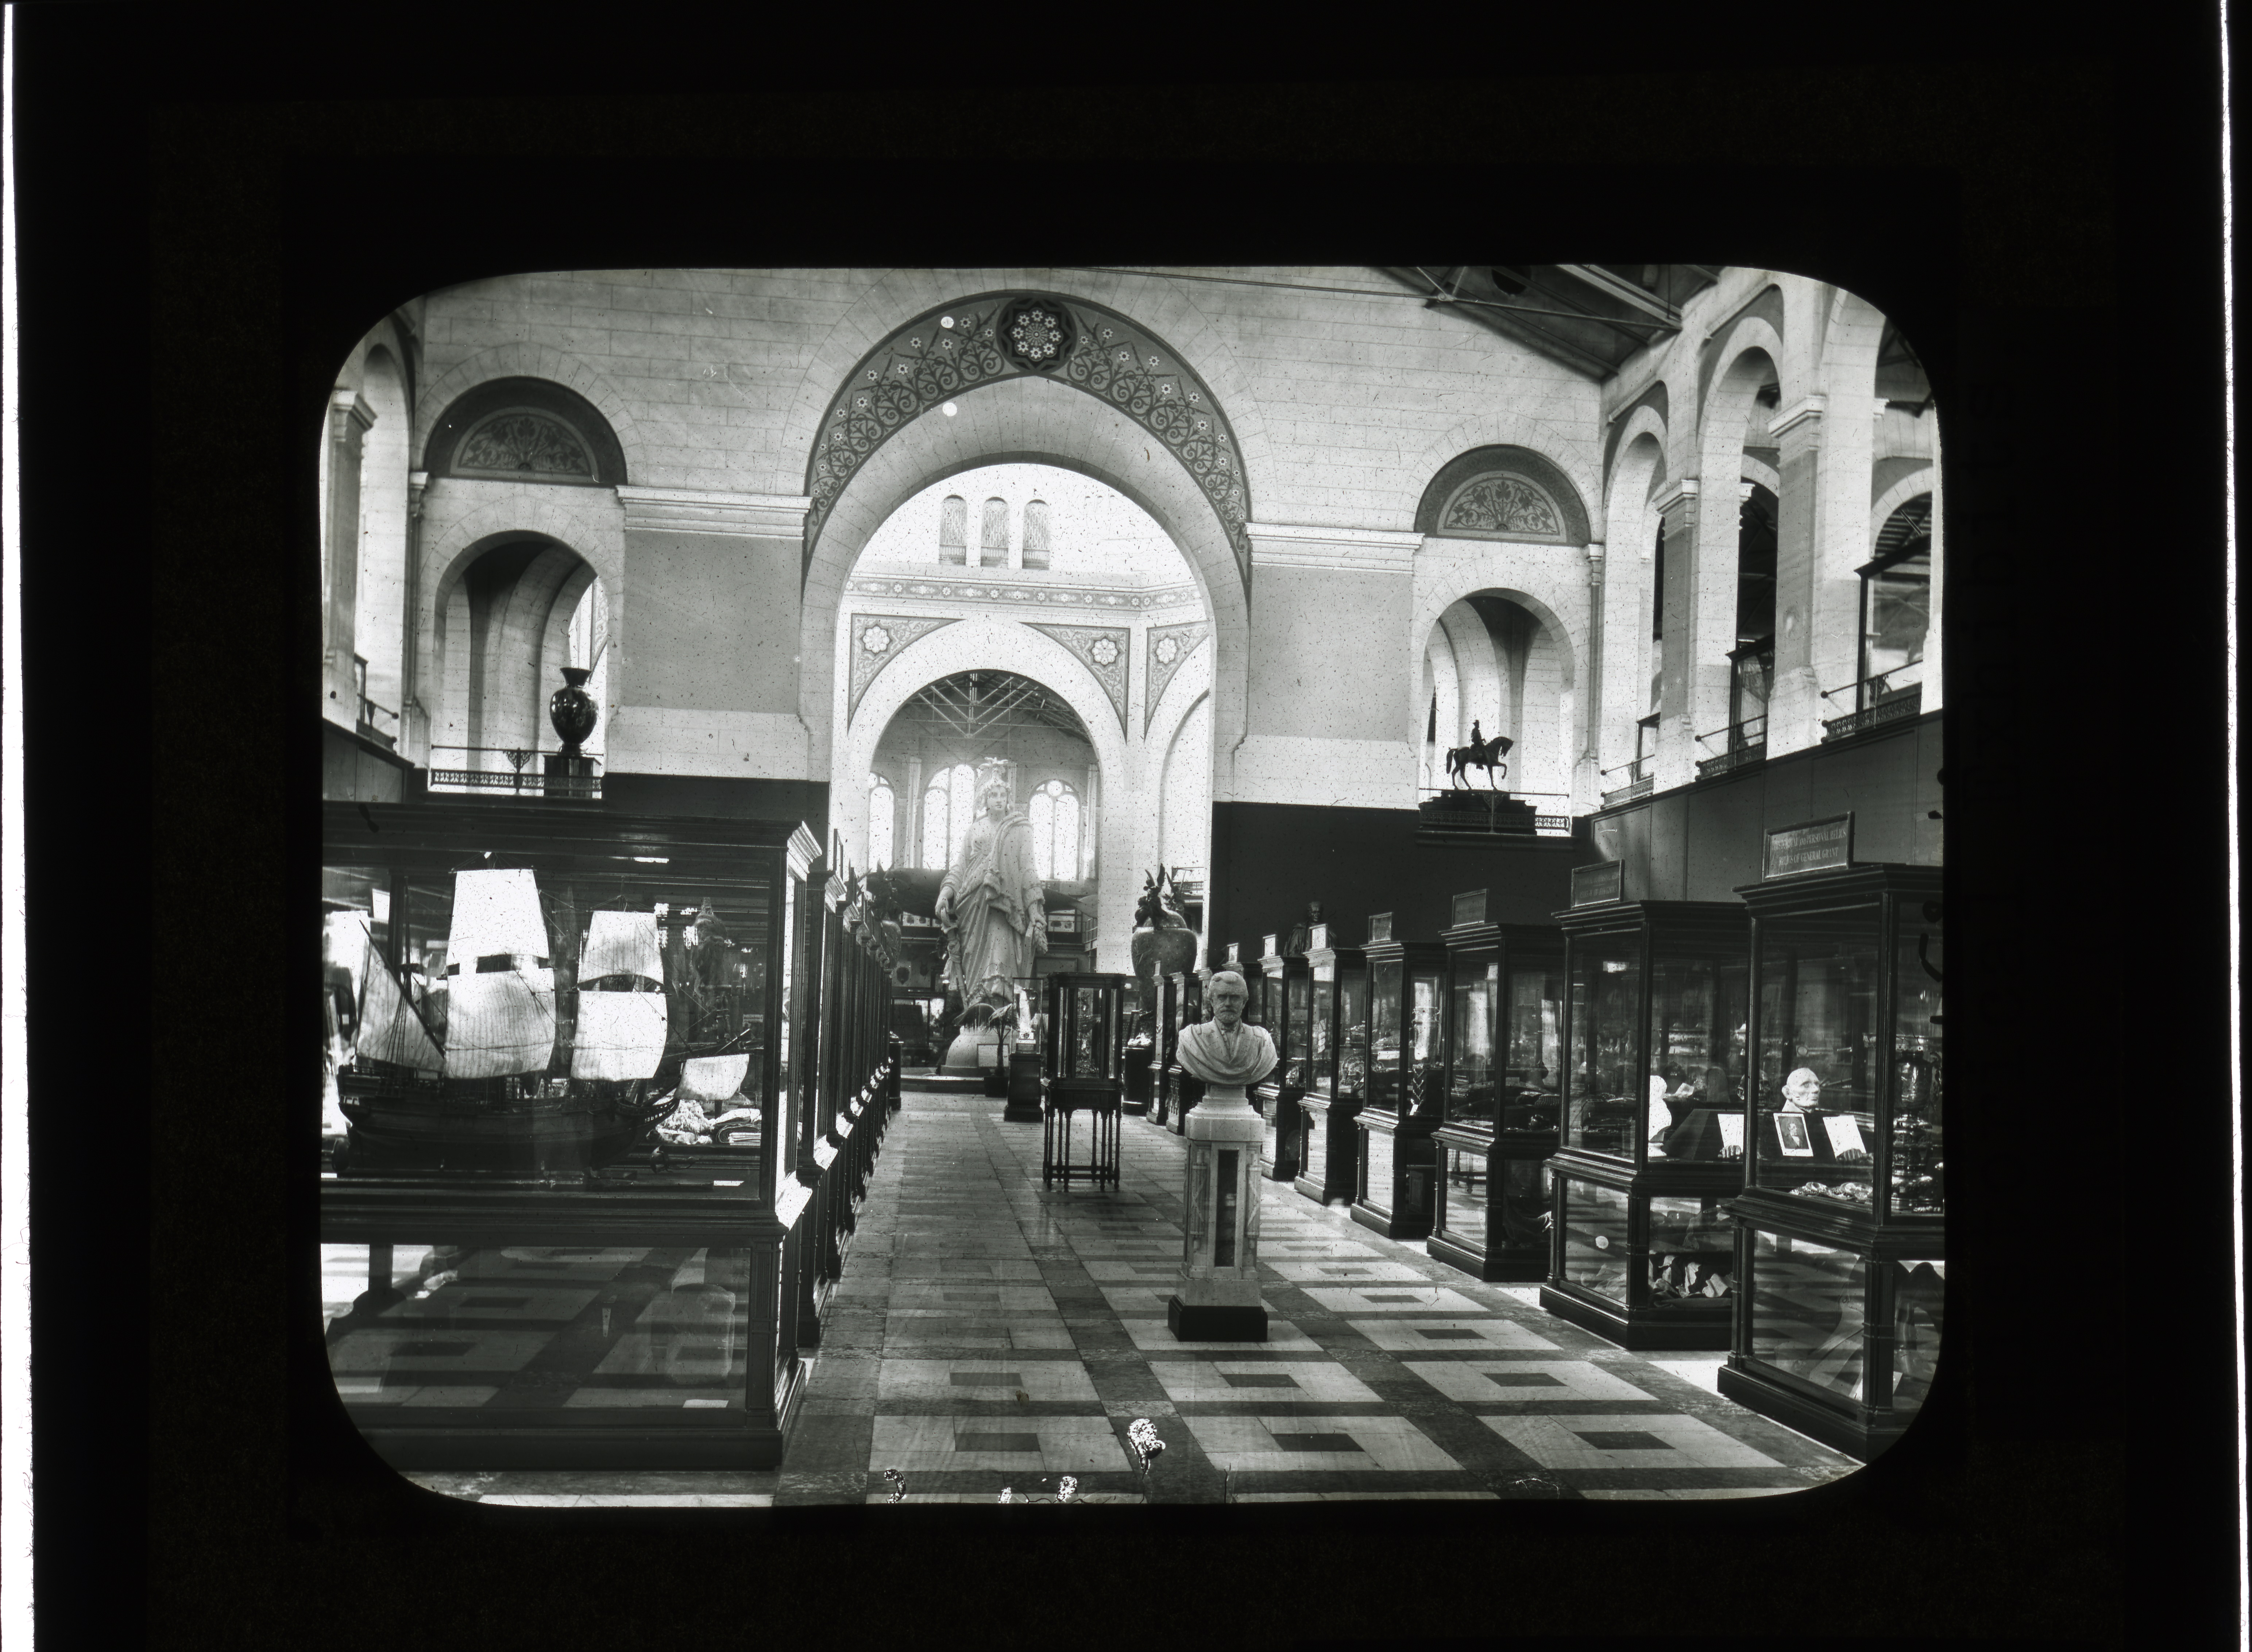 Histroric and Personal Relics Exhibit, United States National Museum. Accession 12-492, Smithsonian Institution Archives, Neg. no. SIA2012-2767.